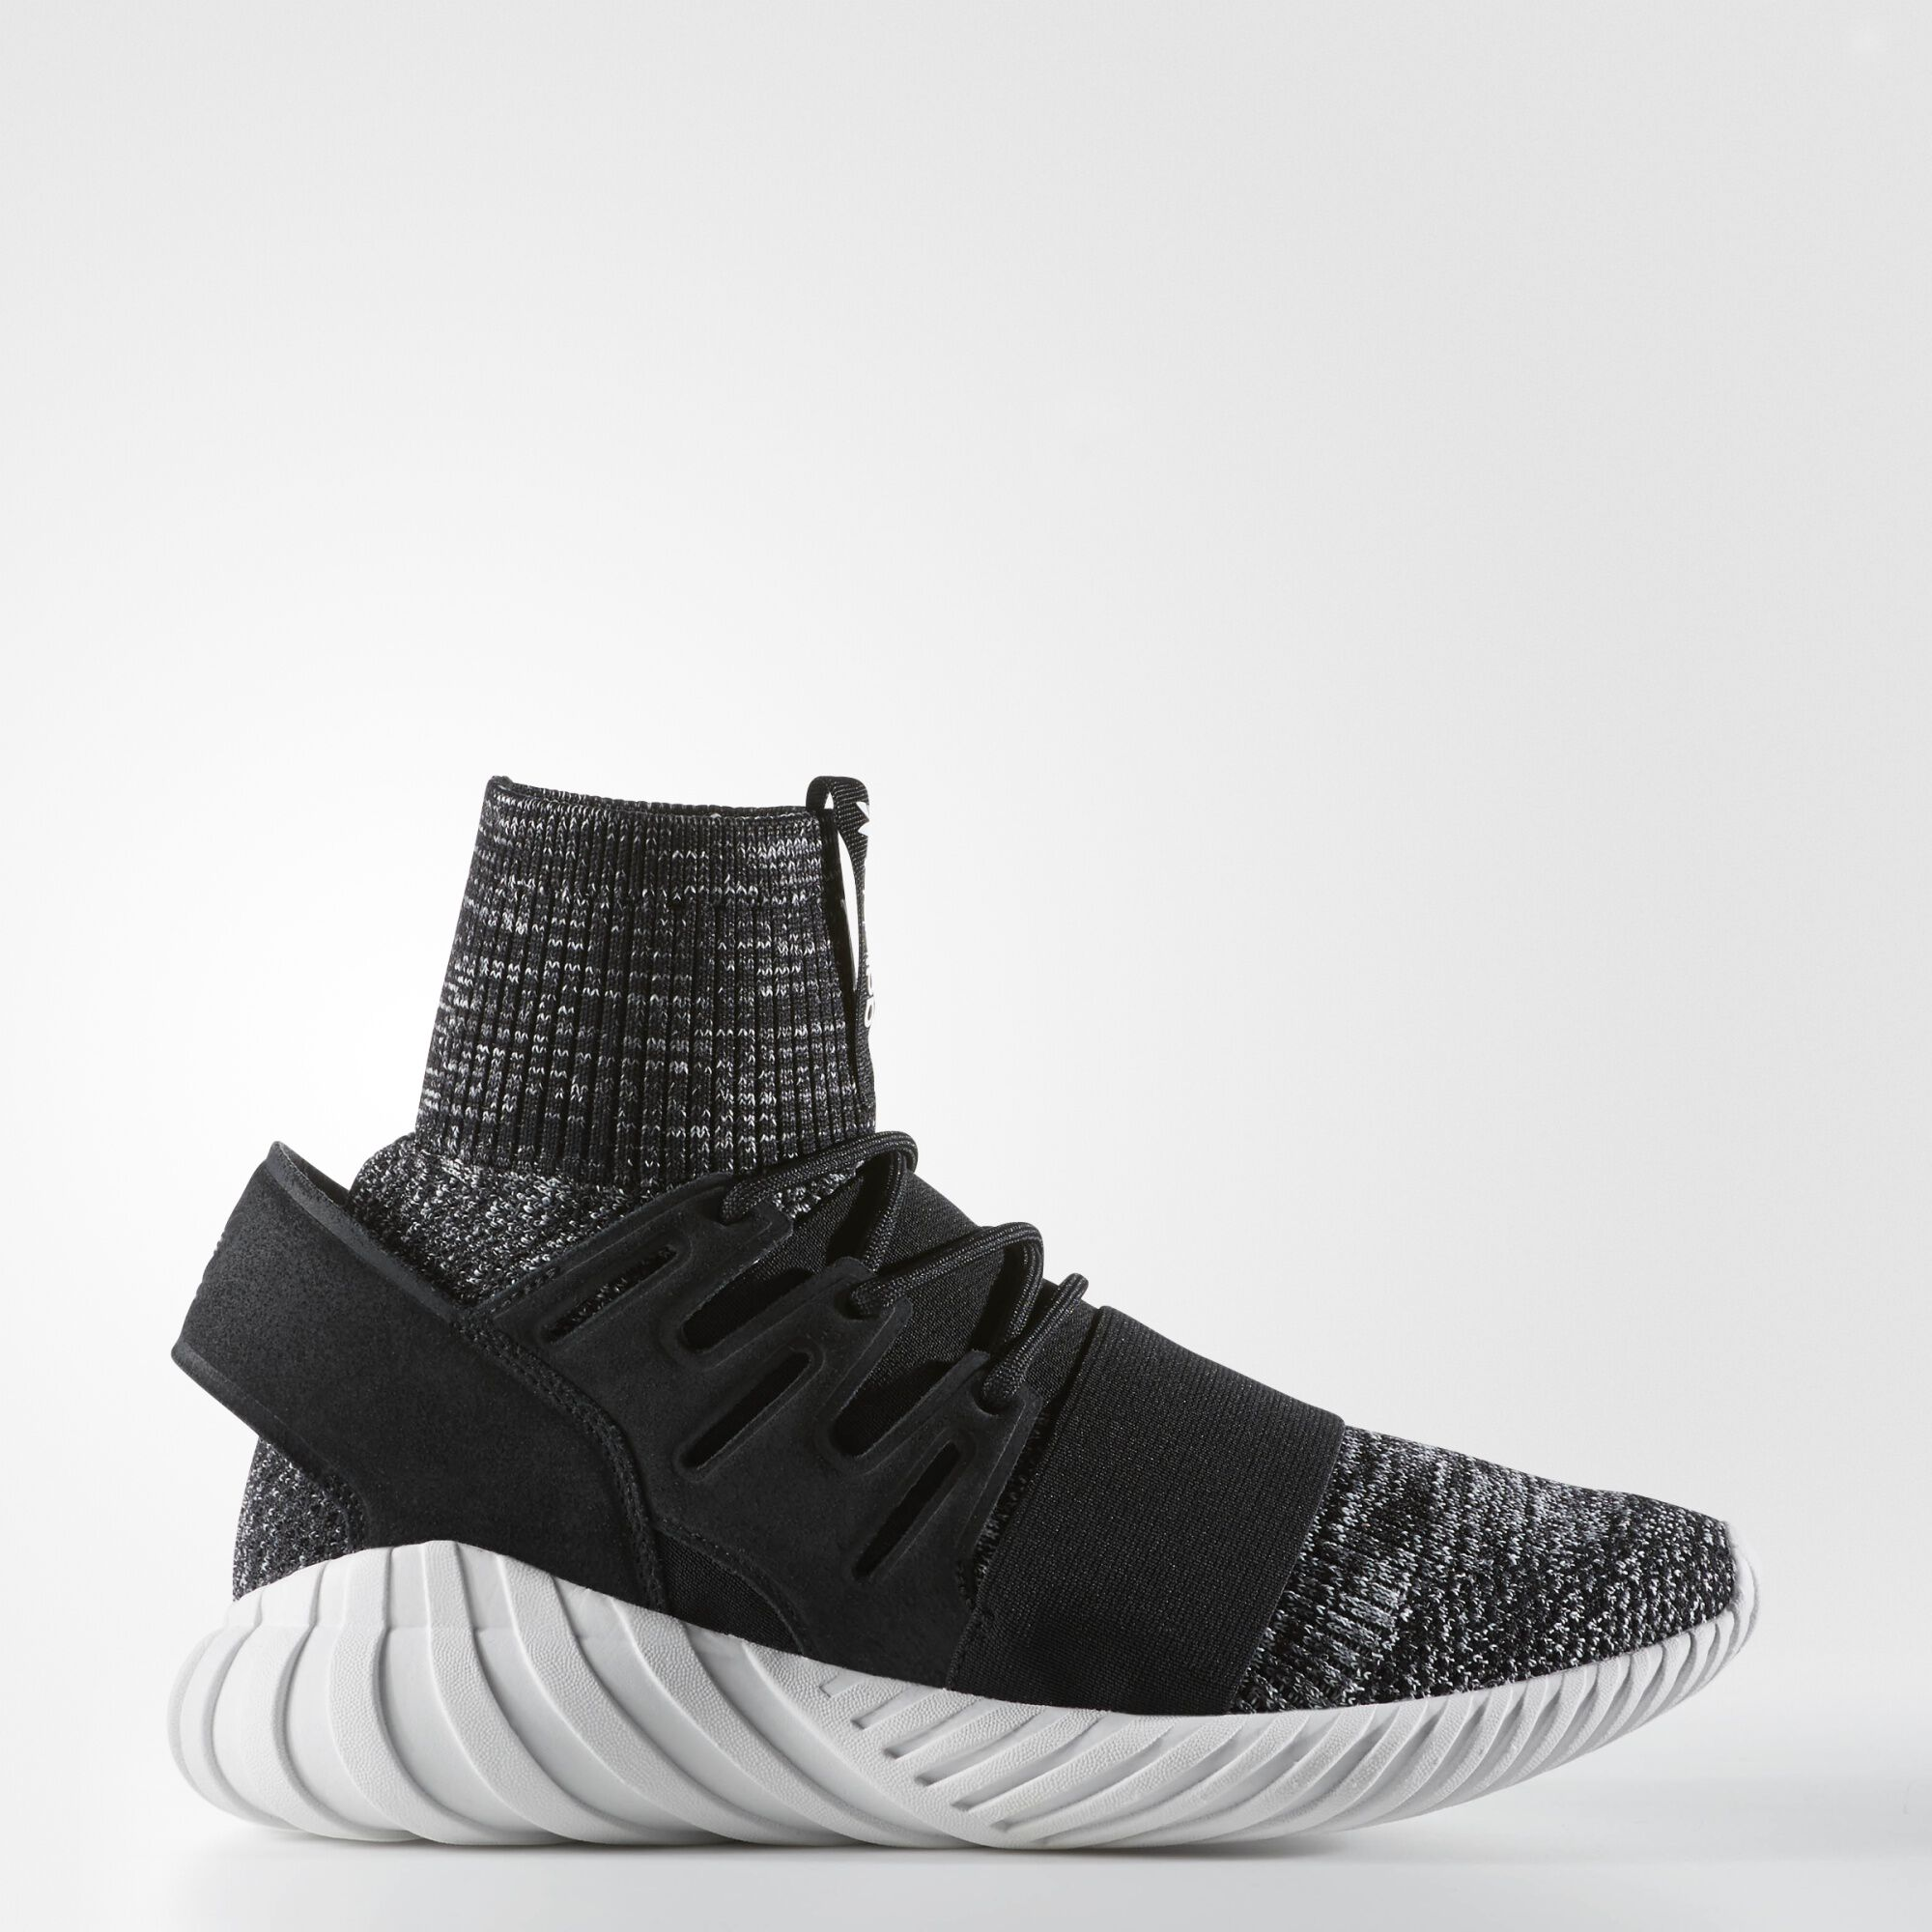 Adidas Men 's Tubular Doom Shoes Black adidas Canada